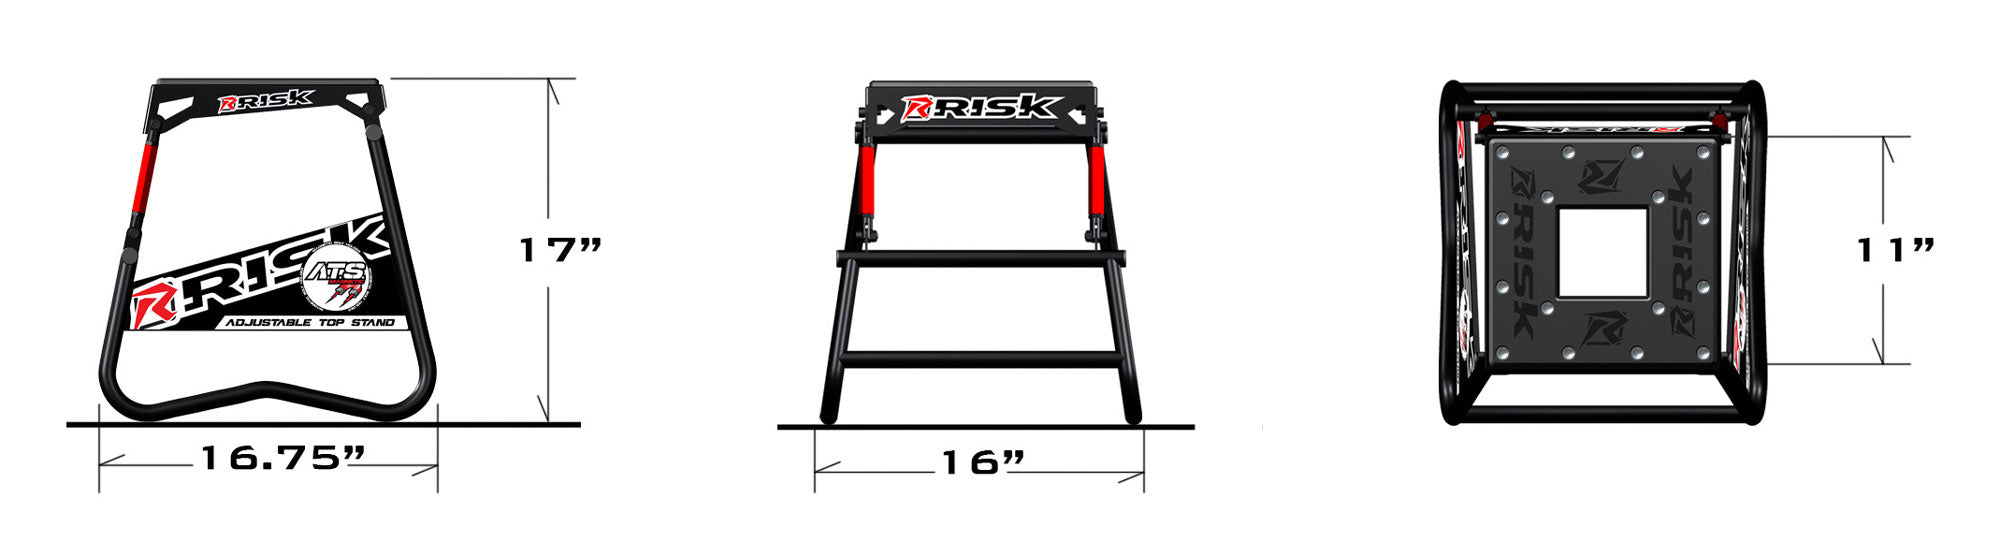 Risk Racing ATS Adjustable Top Moto Stand specs